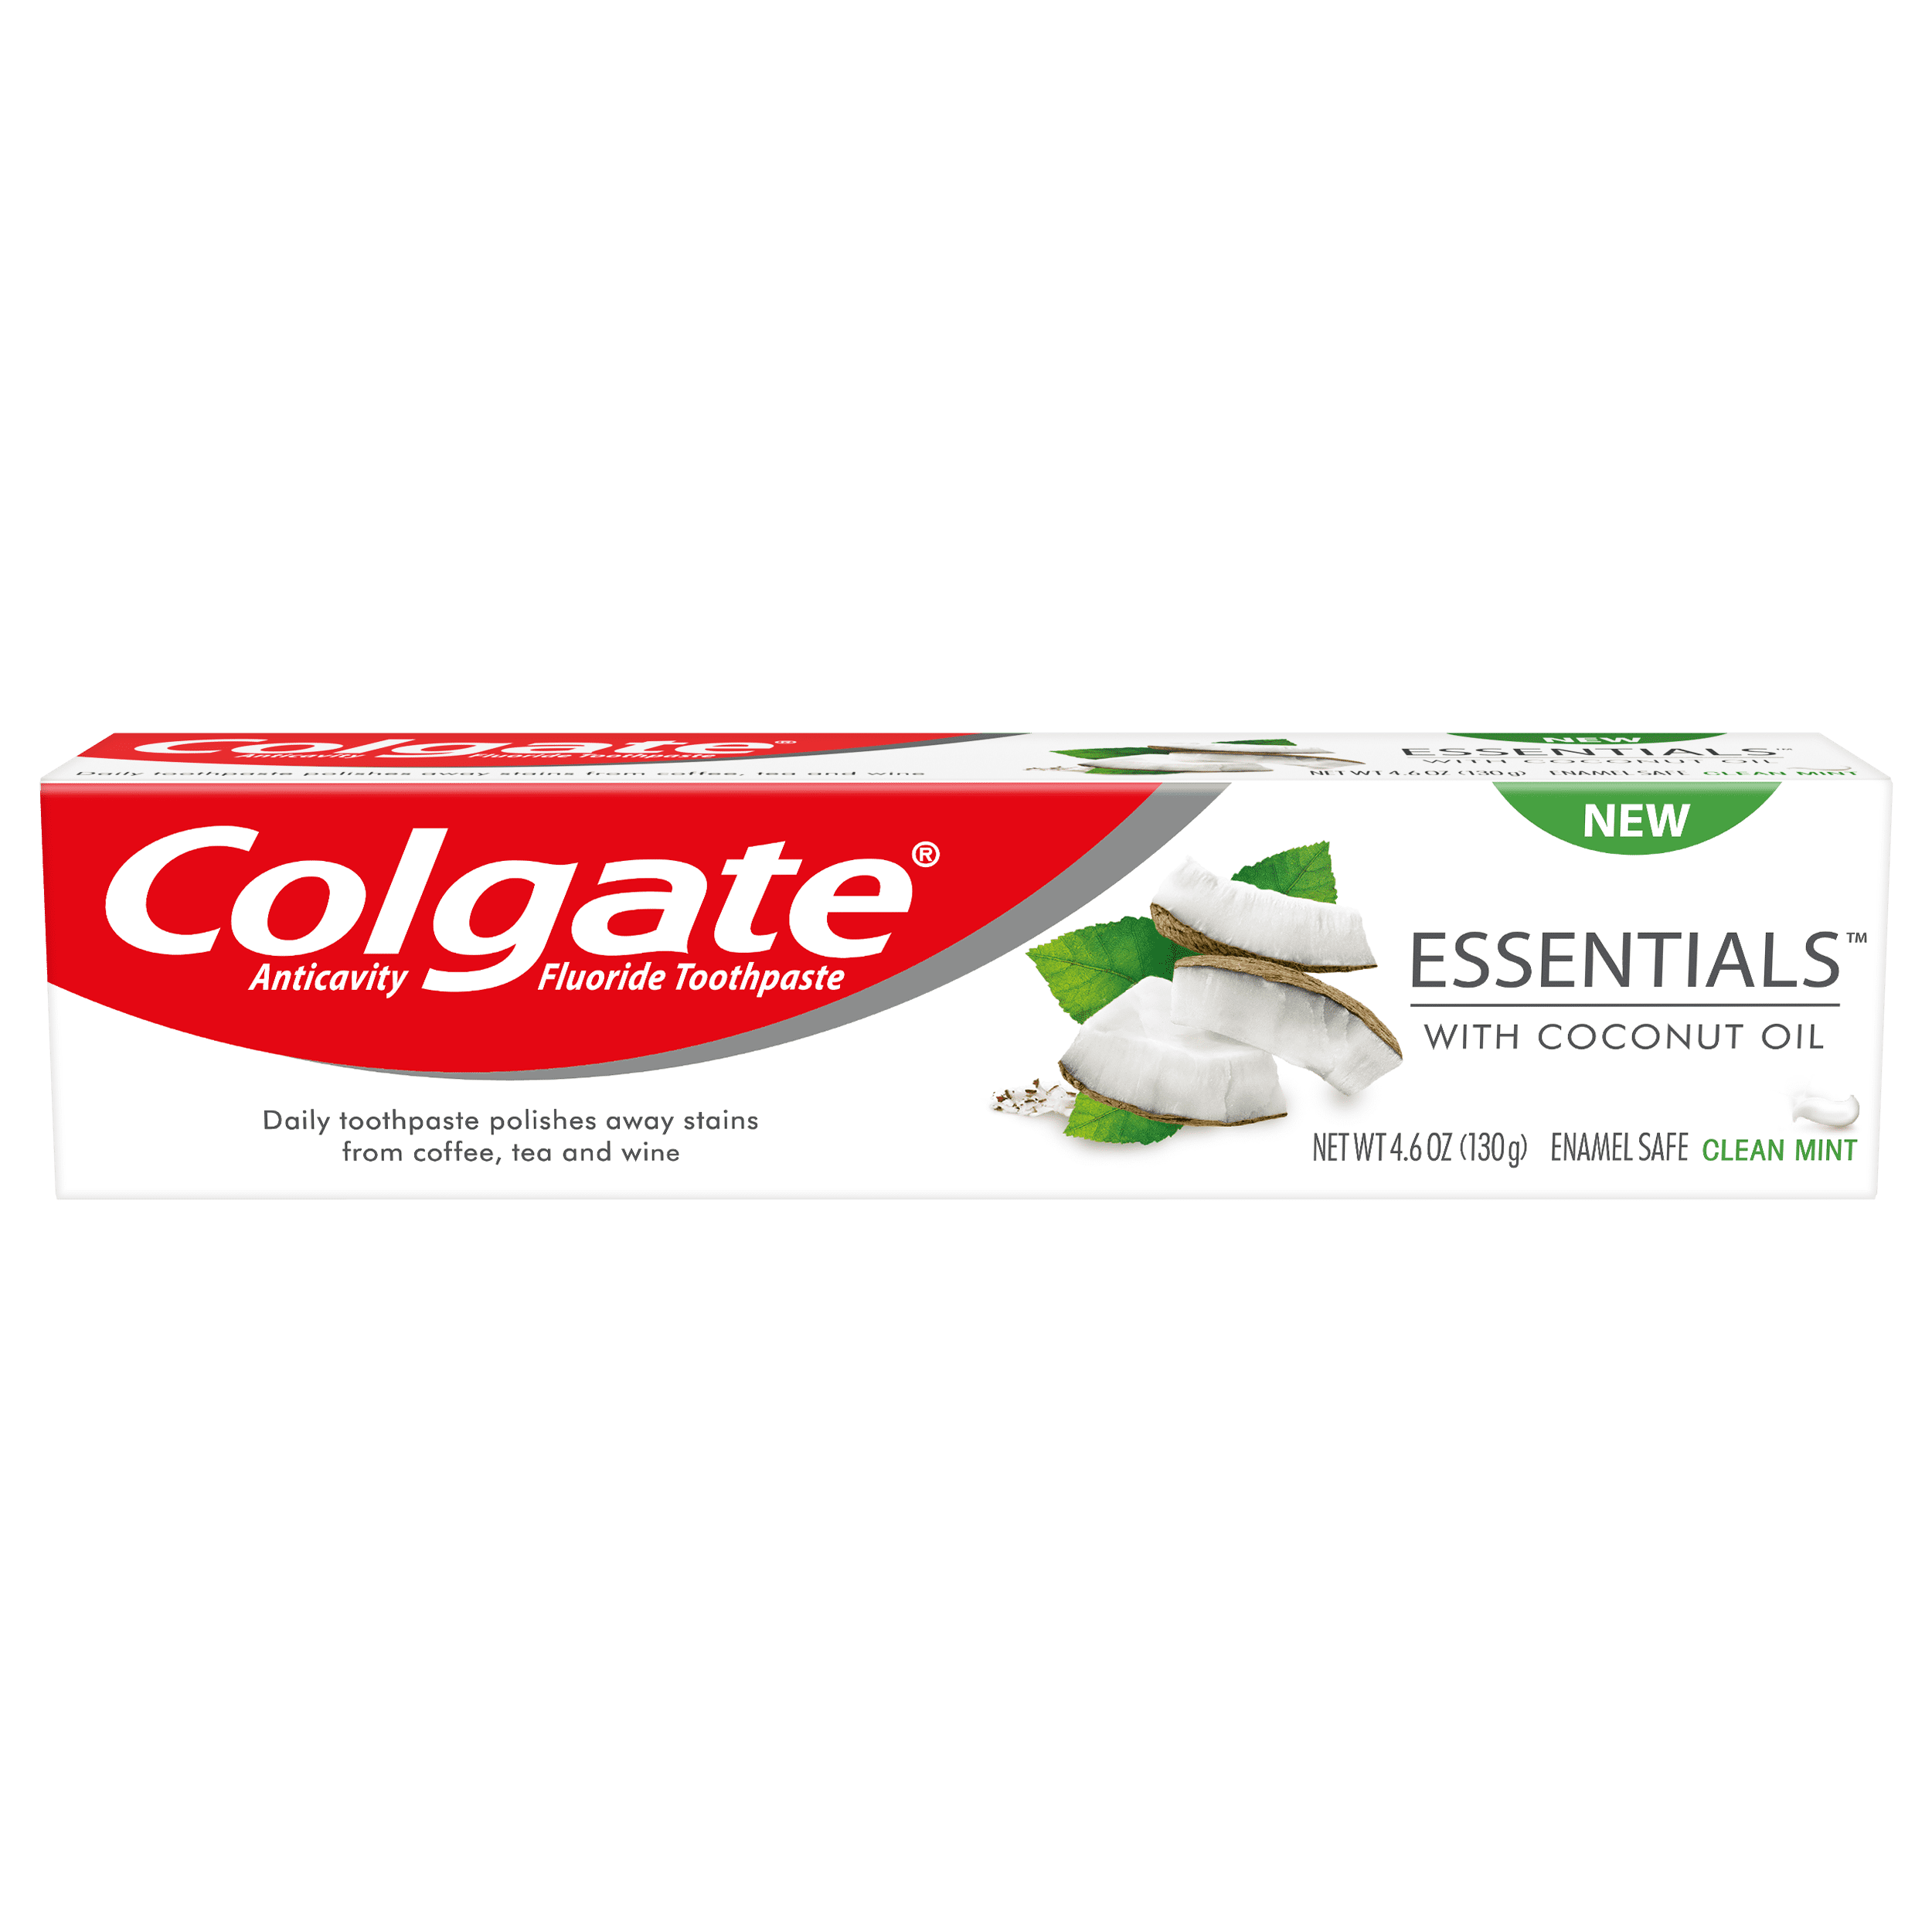 Colgate Essentials with Coconut Oil Whitening Toothpaste